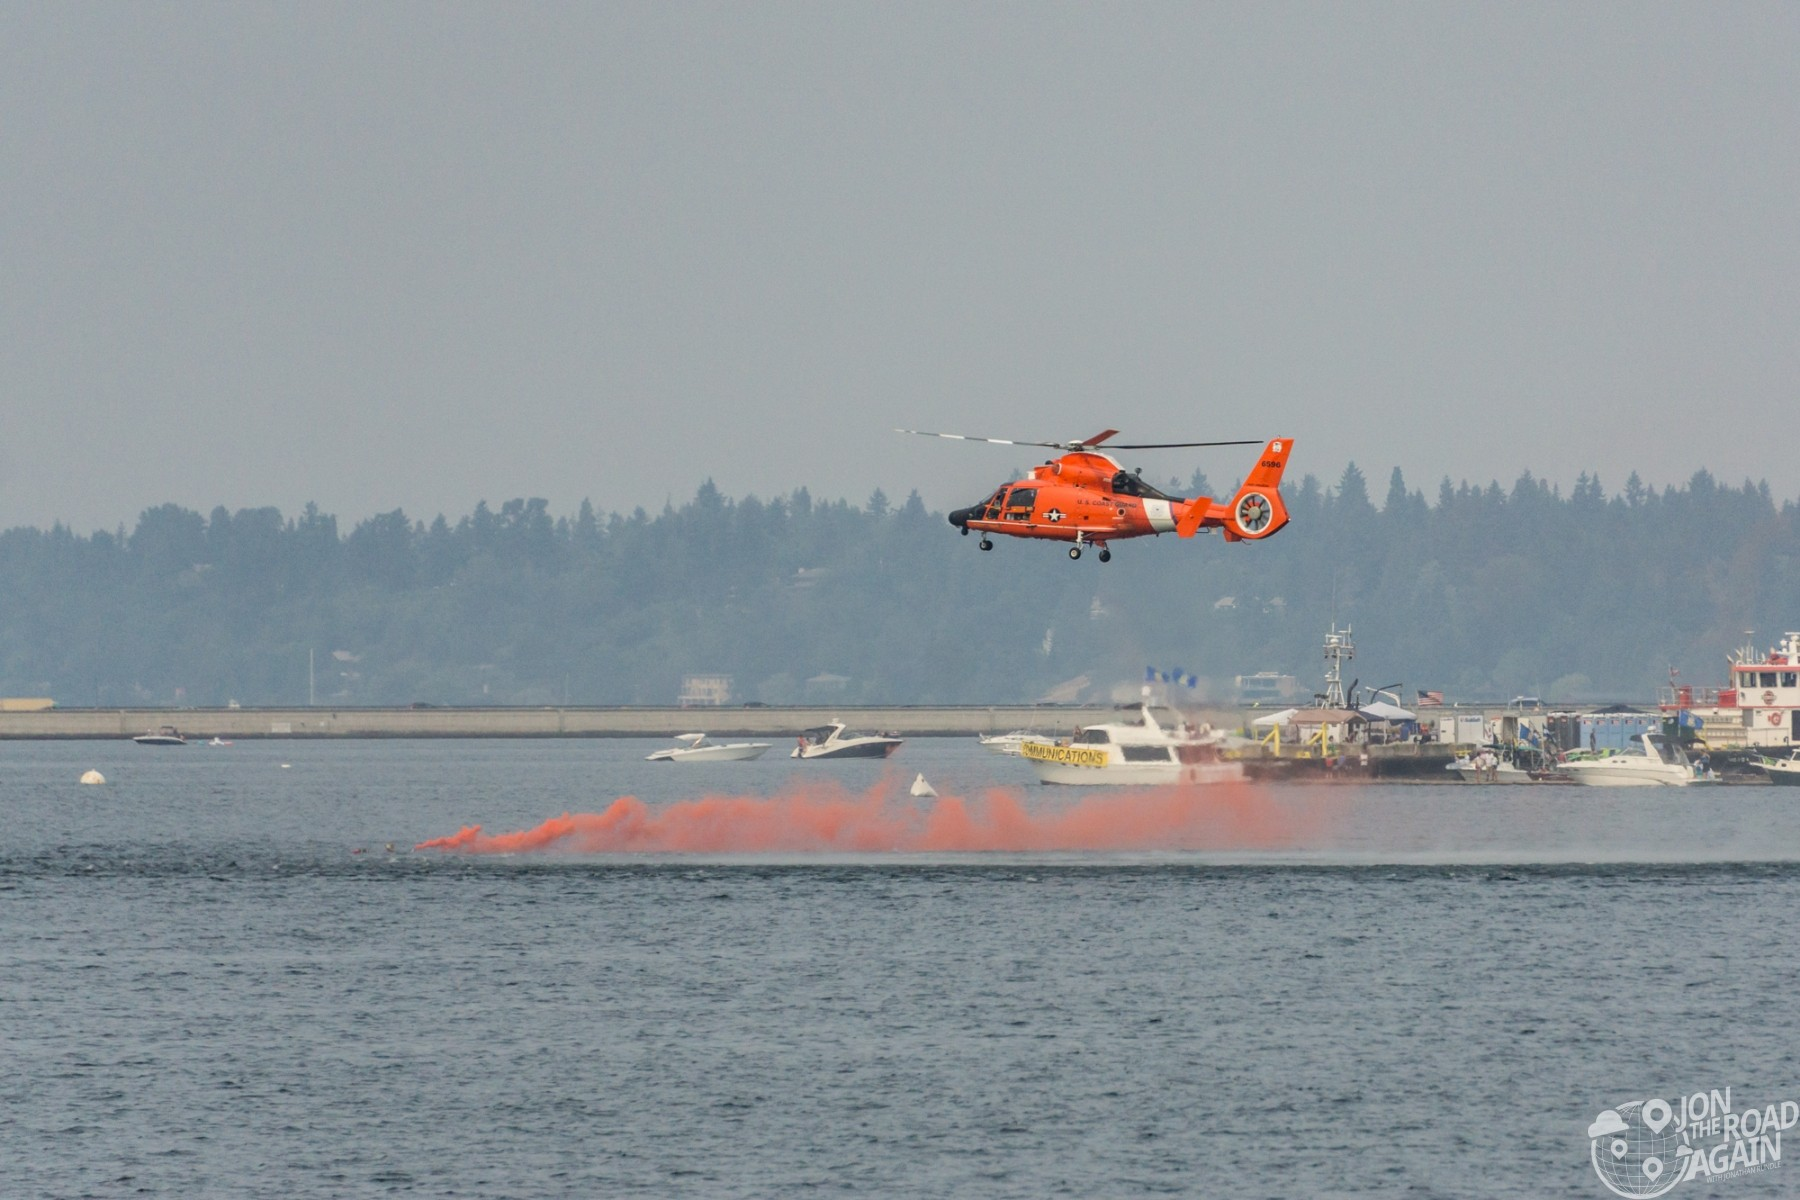 US Coast Guard SAR Demo - MH65 Helicopter